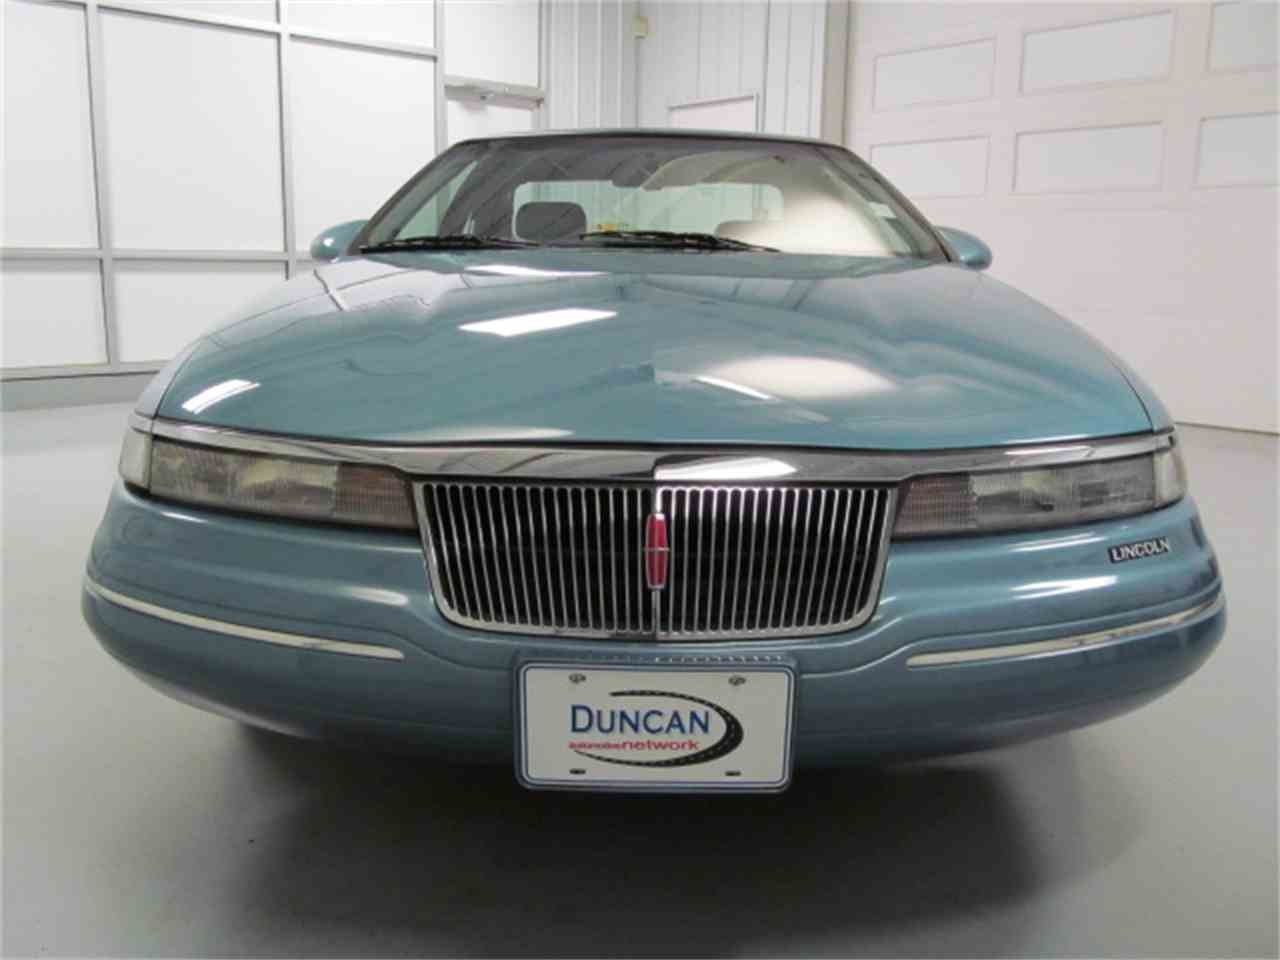 Large Picture of 1993 Mark VIII - $9,900.00 Offered by Duncan Imports & Classic Cars - JL9Z